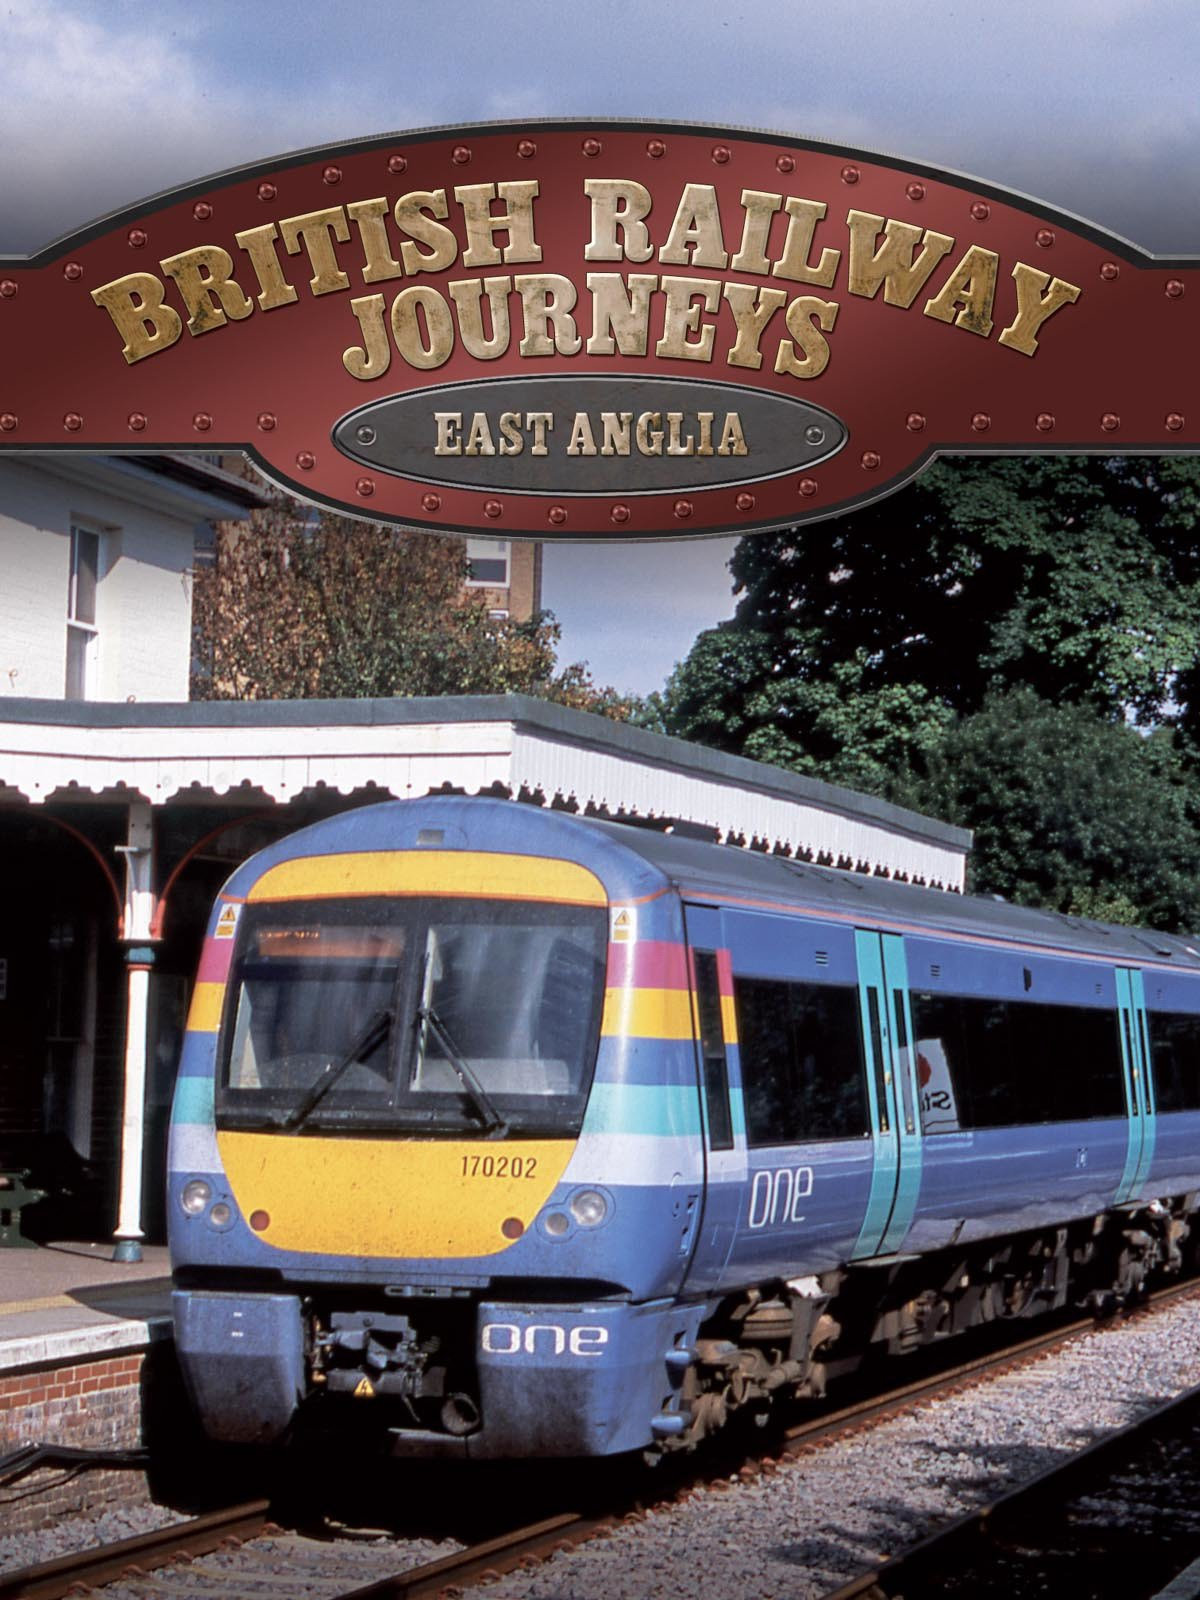 British Railway Journeys: East Anglia